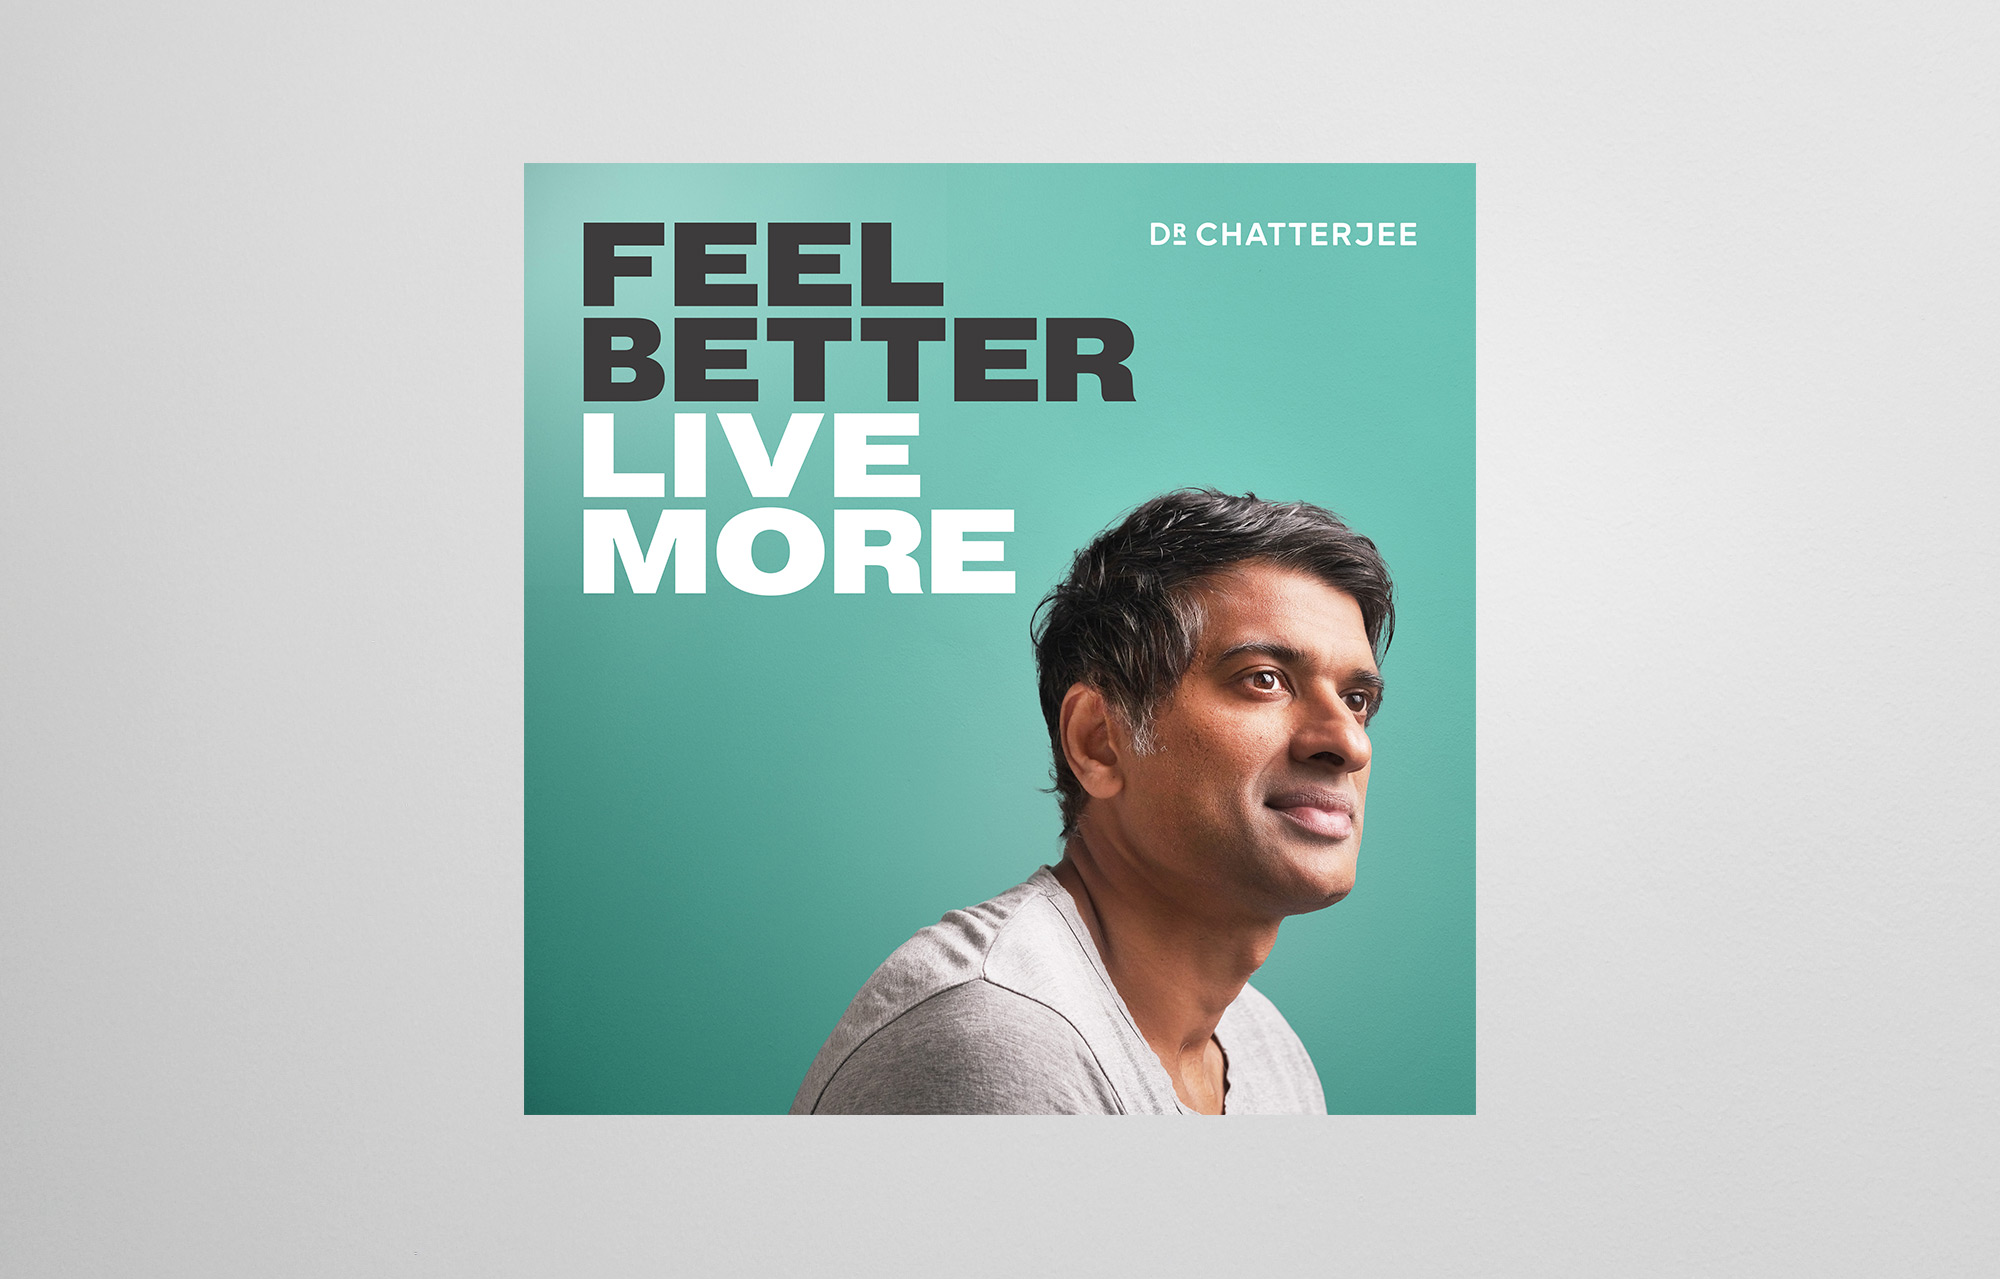 gareth-paul-jones-studio-design-dr-chatterjee-feel-better-live-more-case-study-03